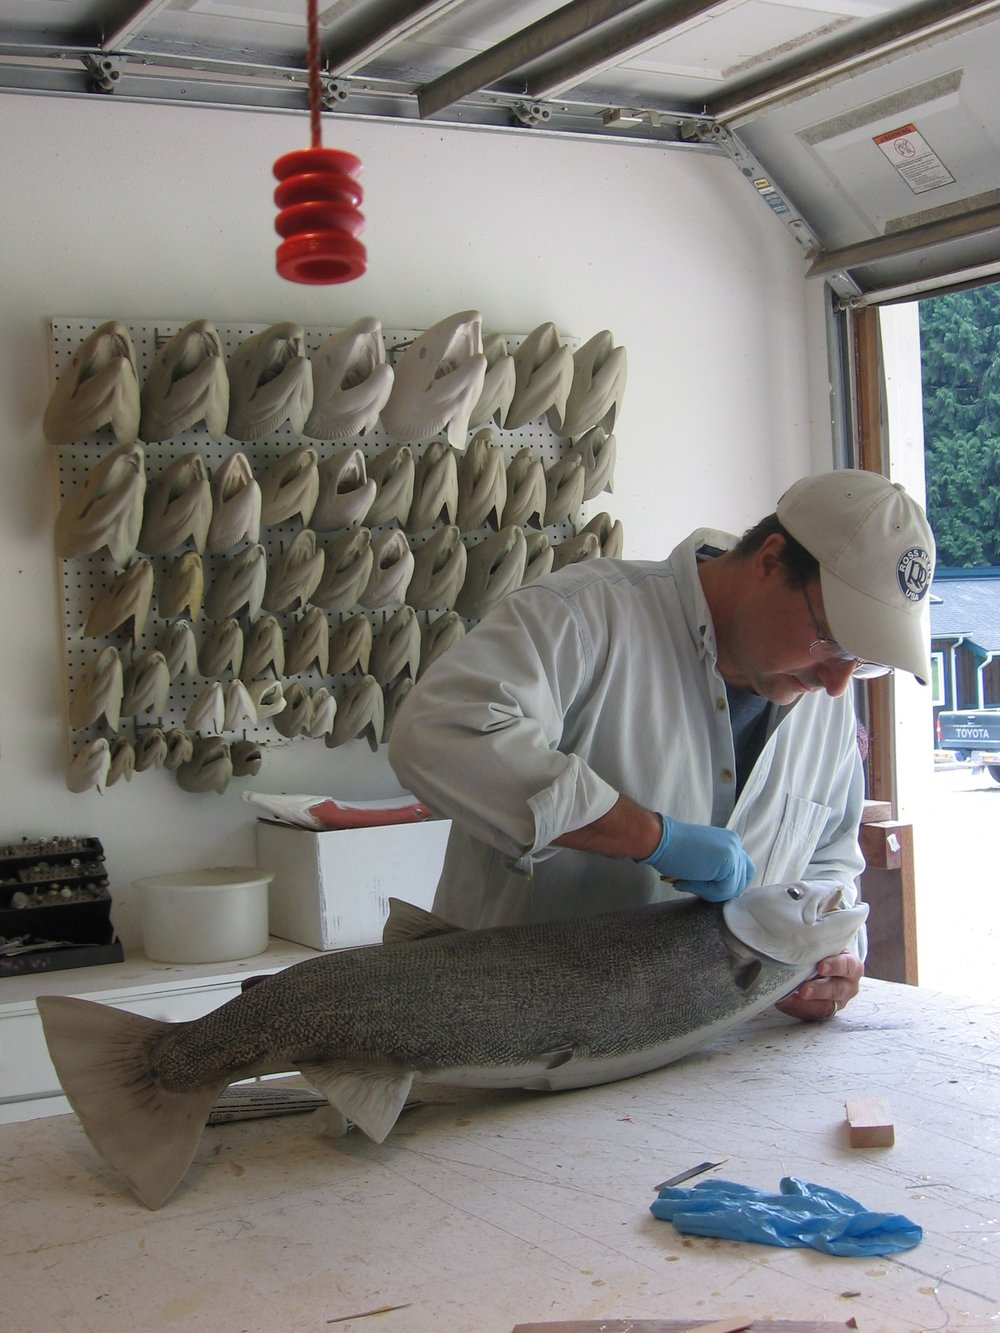 Luke Filmer of Blackwater Fish Replicas working on custom steelhead blank